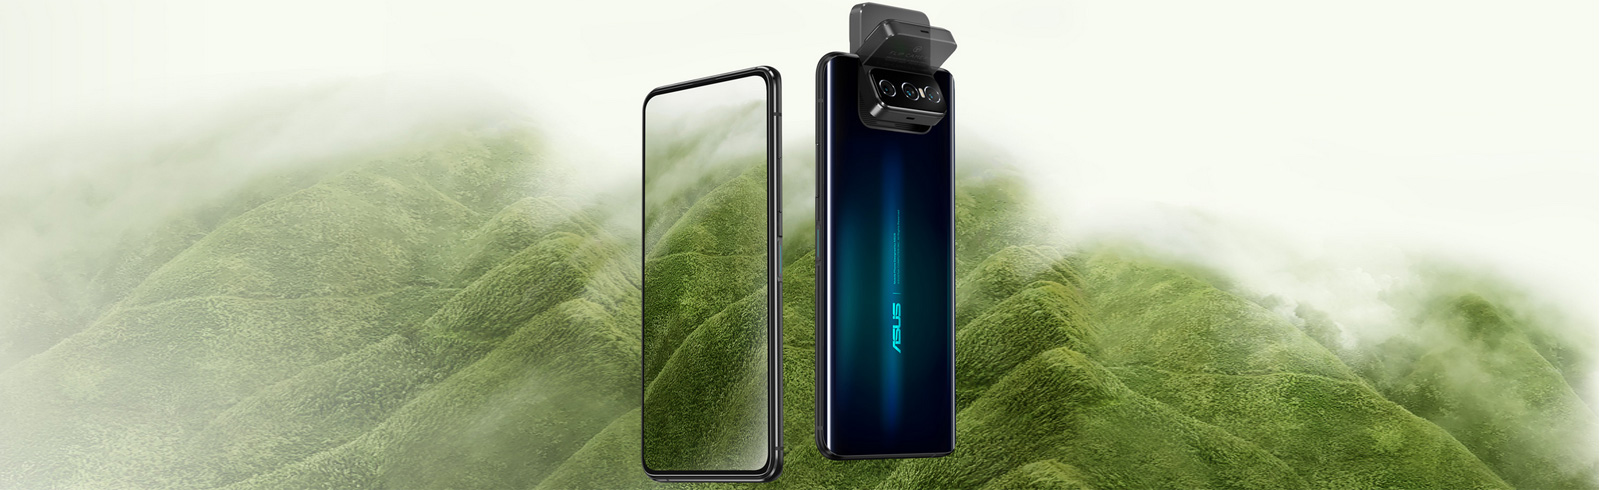 Asus Zenfone 7 and Zenfone 7 Pro are official